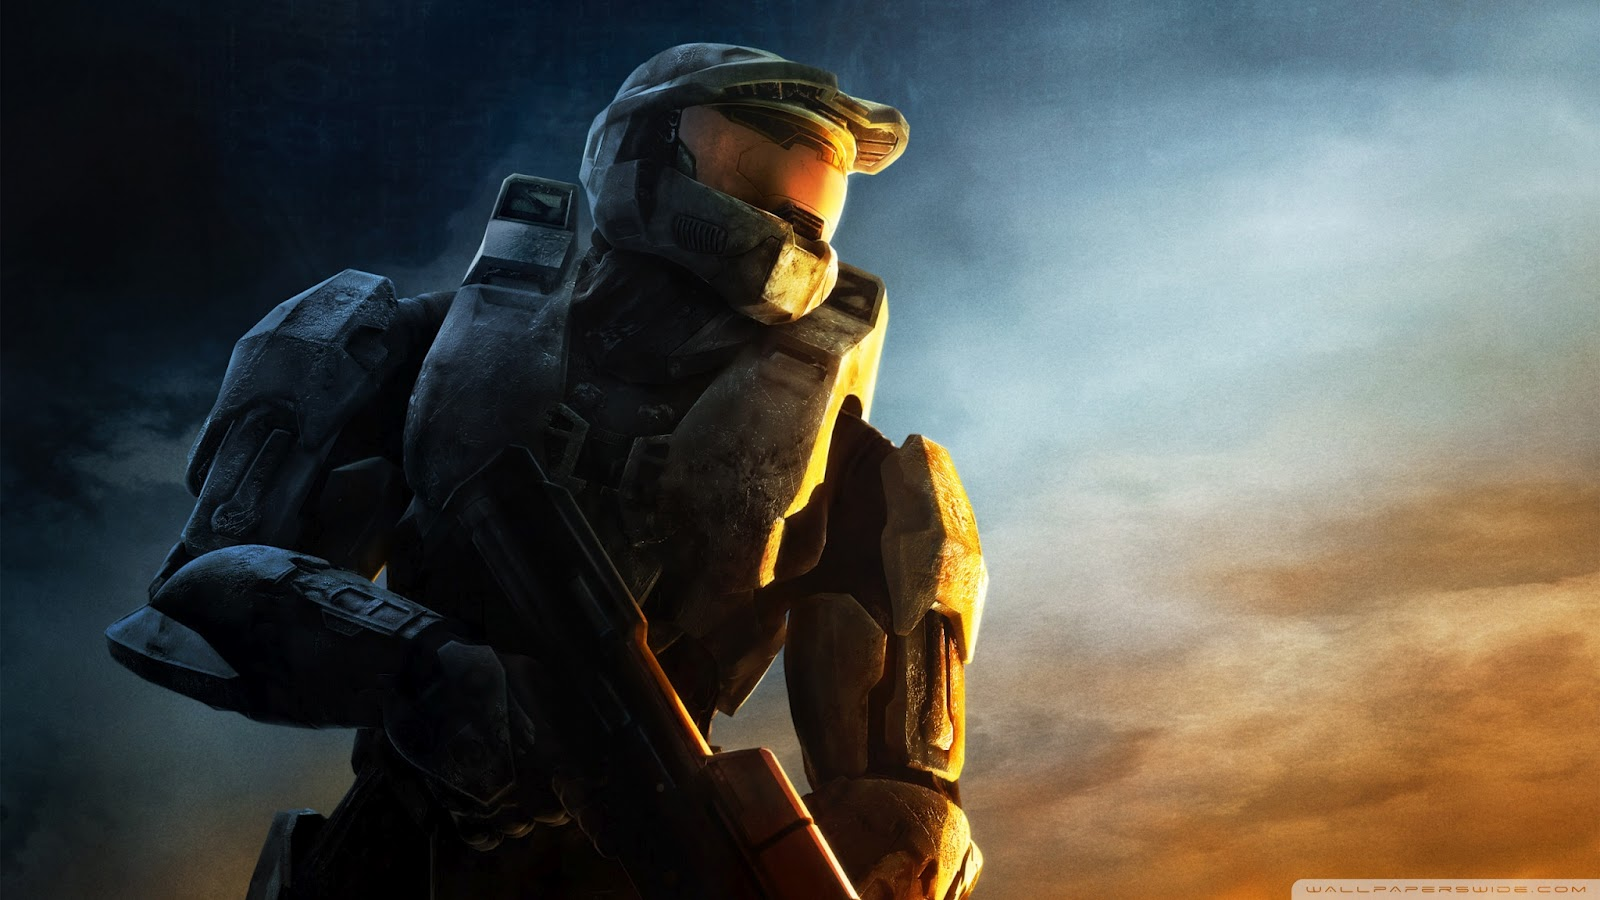 master_chief_halo_game-wallpaper-2048x11